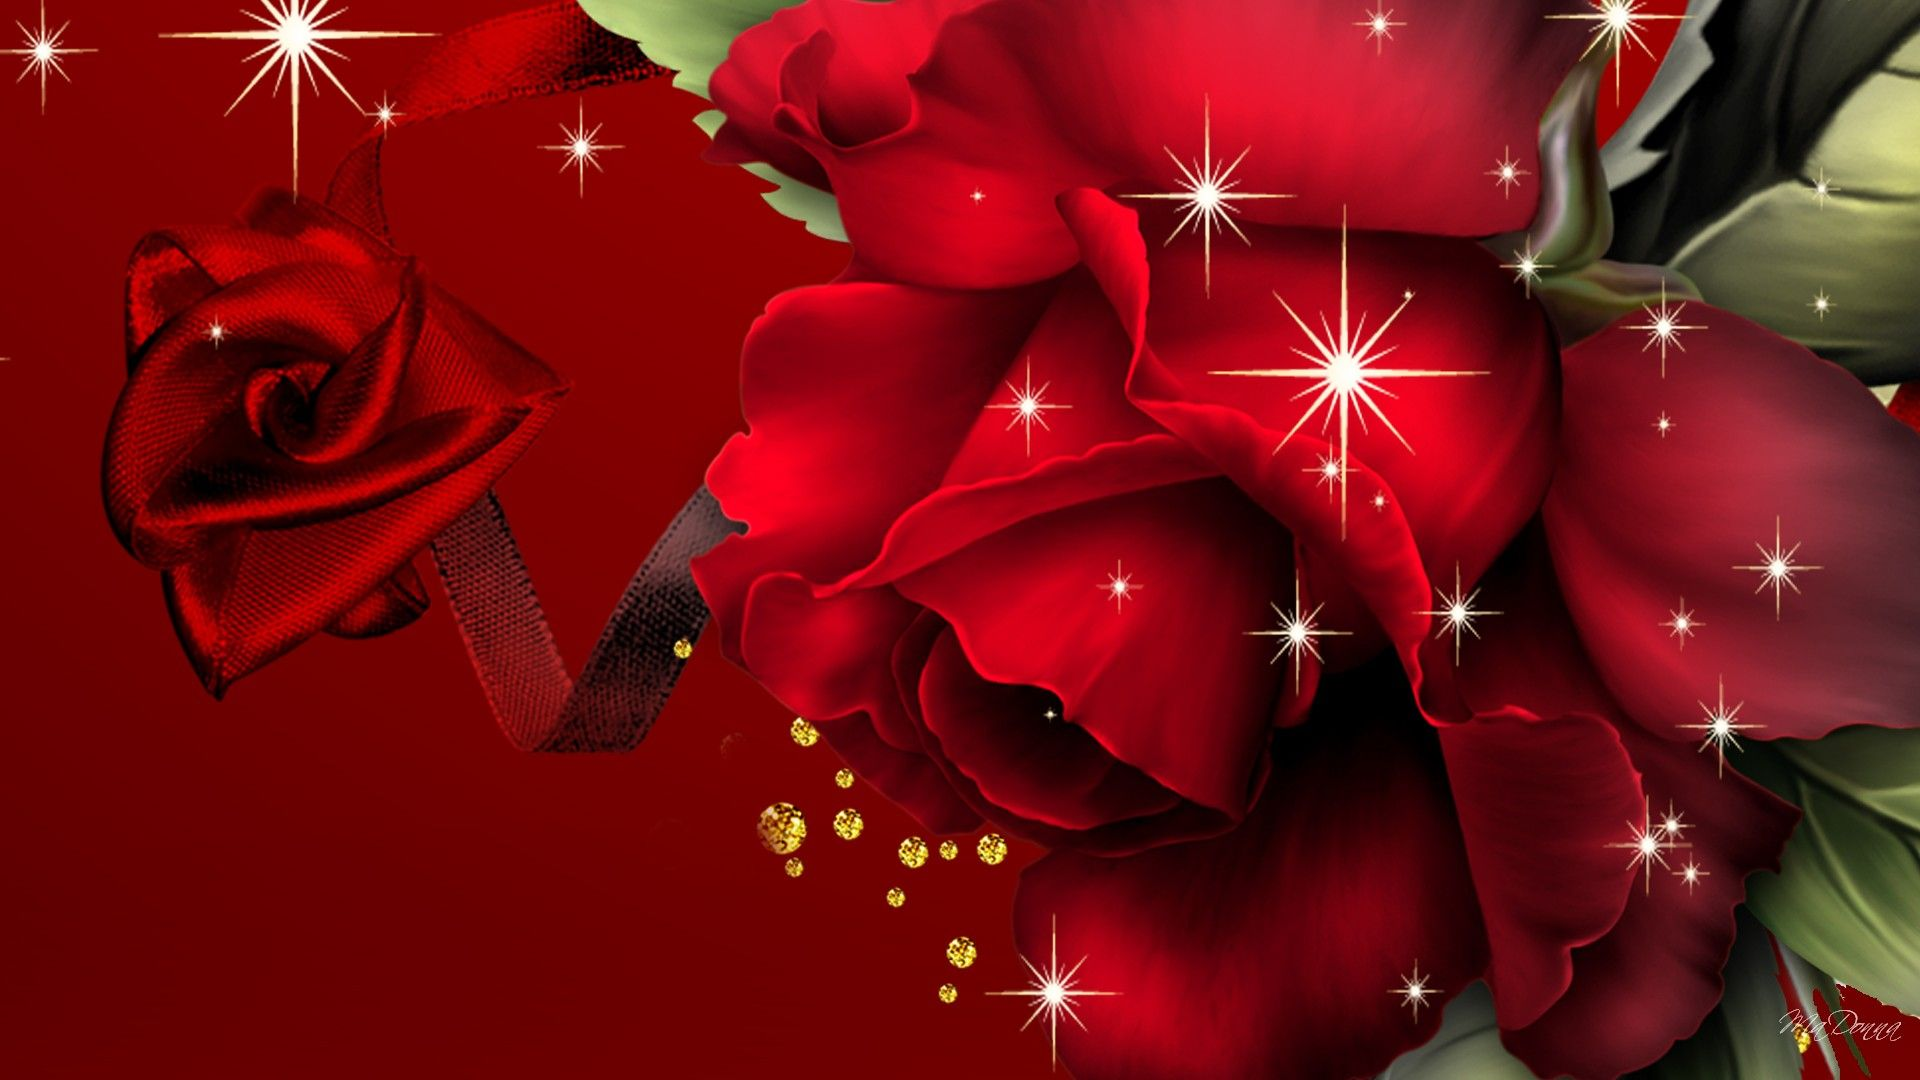 50 Very Beautiful Rose Wallpaper Awesome Gallery In 2020 Rose Flower Wallpaper Red Roses Wallpaper Rose Wallpaper